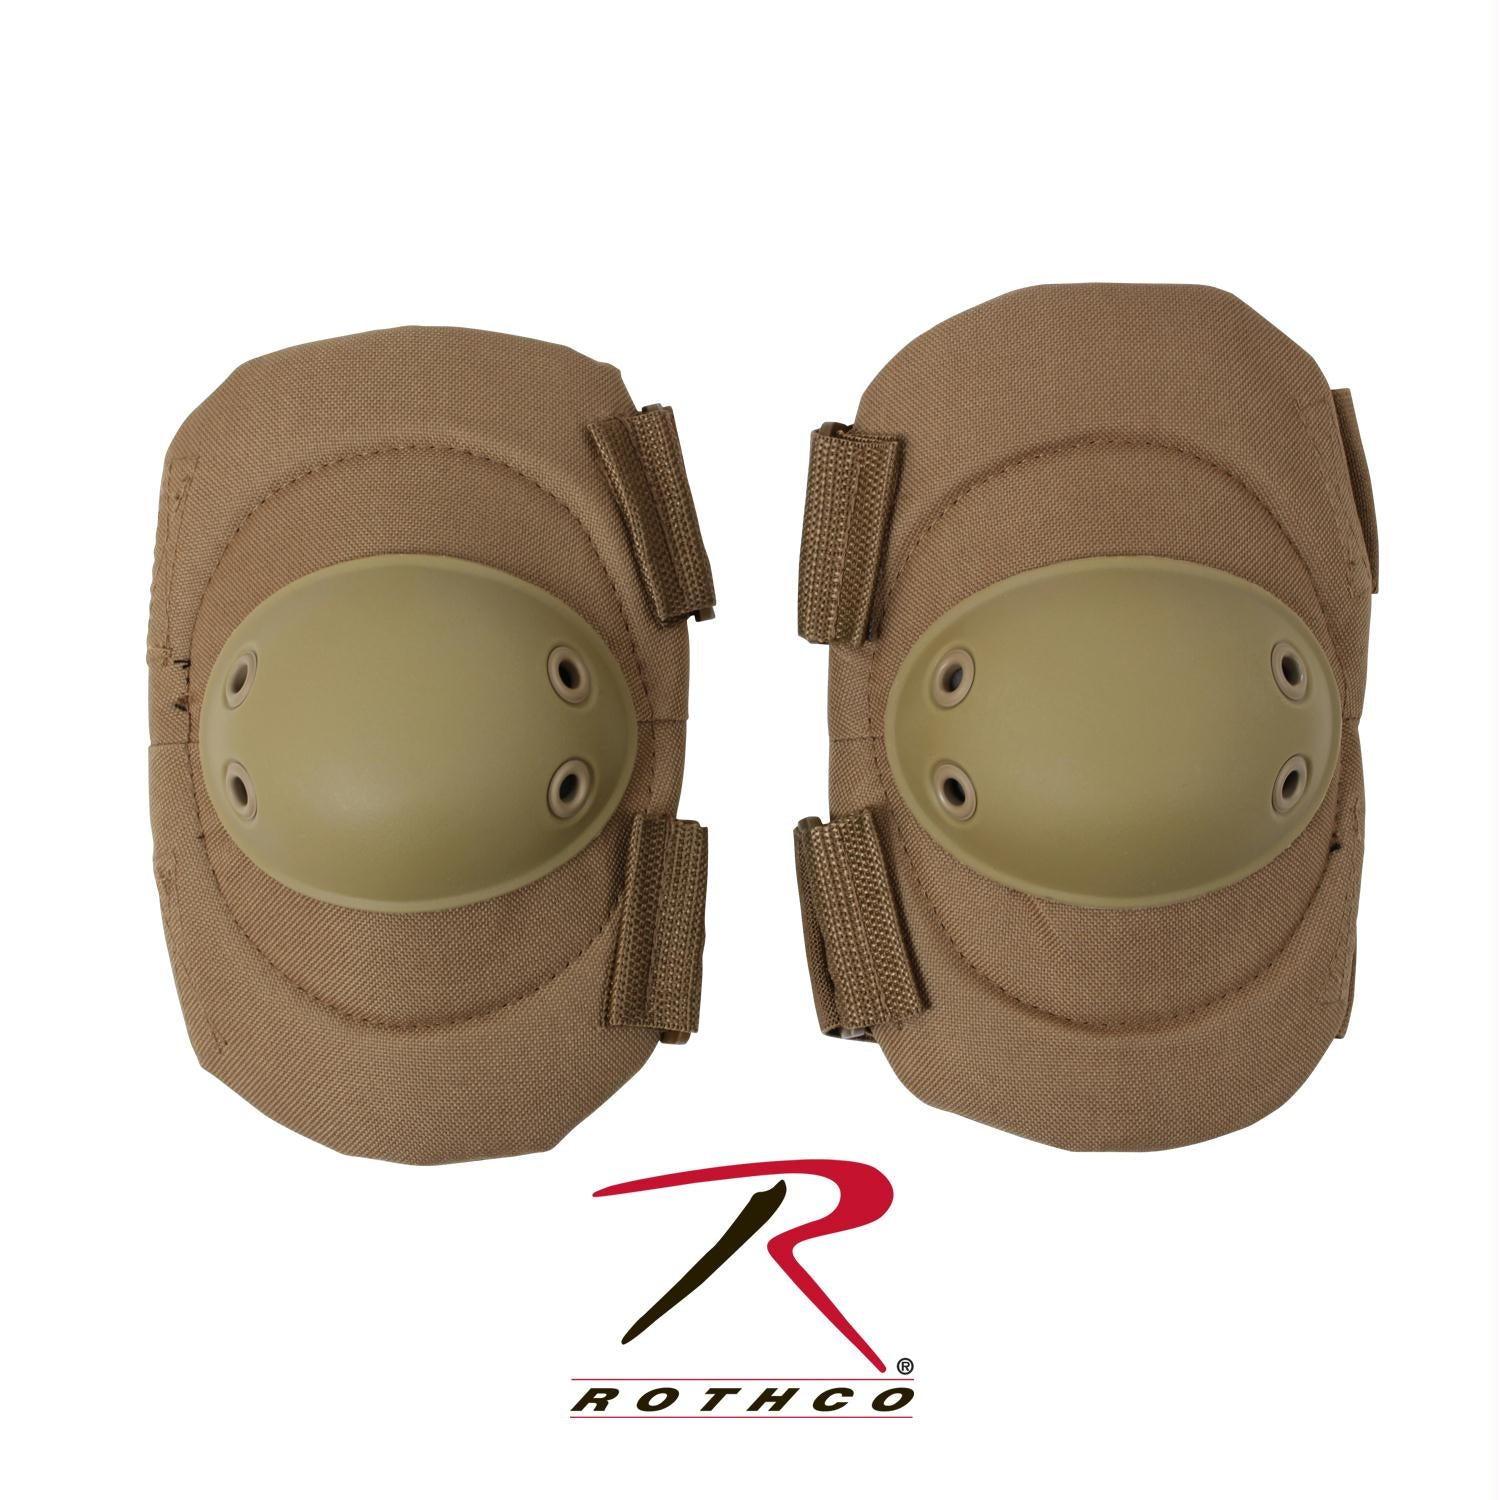 Rothco Multi-purpose SWAT Elbow Pads - Coyote Brown